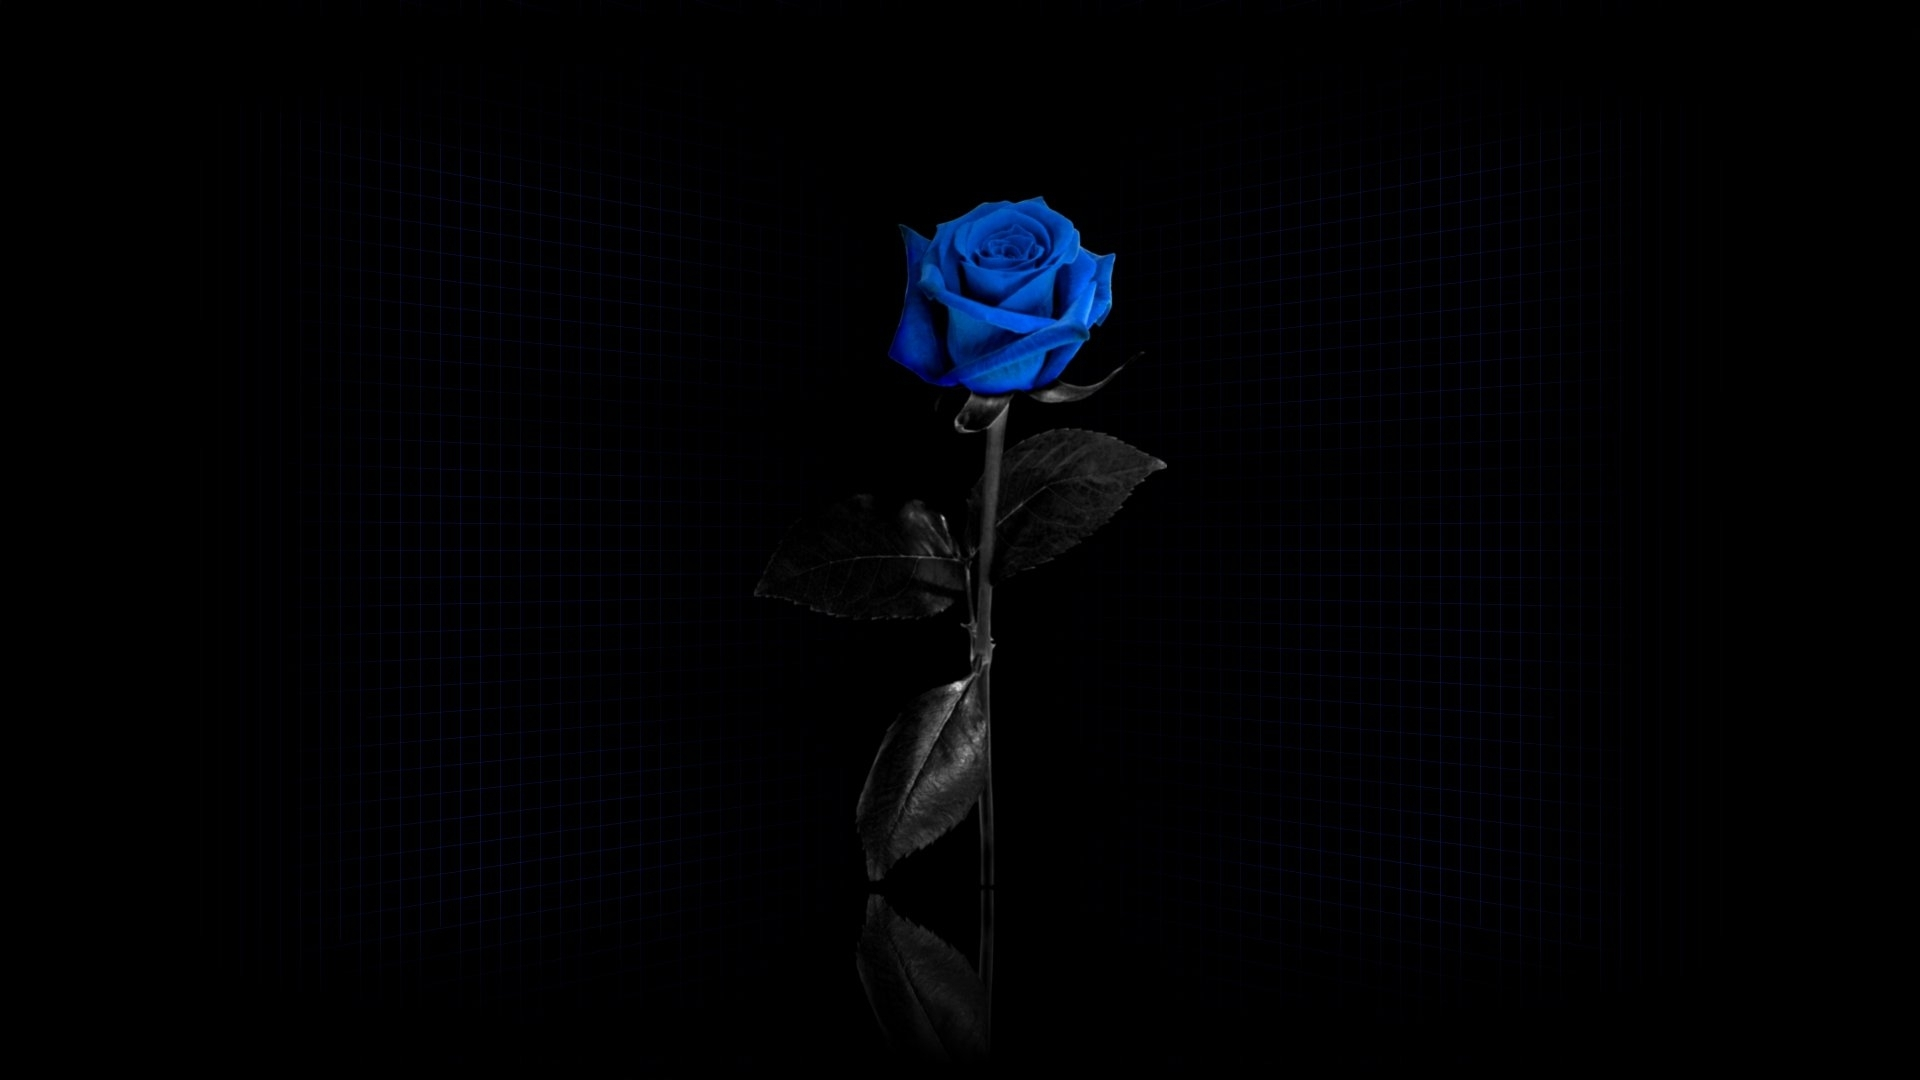 Beautiful blue rose on black background wallpapers and images 1920x1080